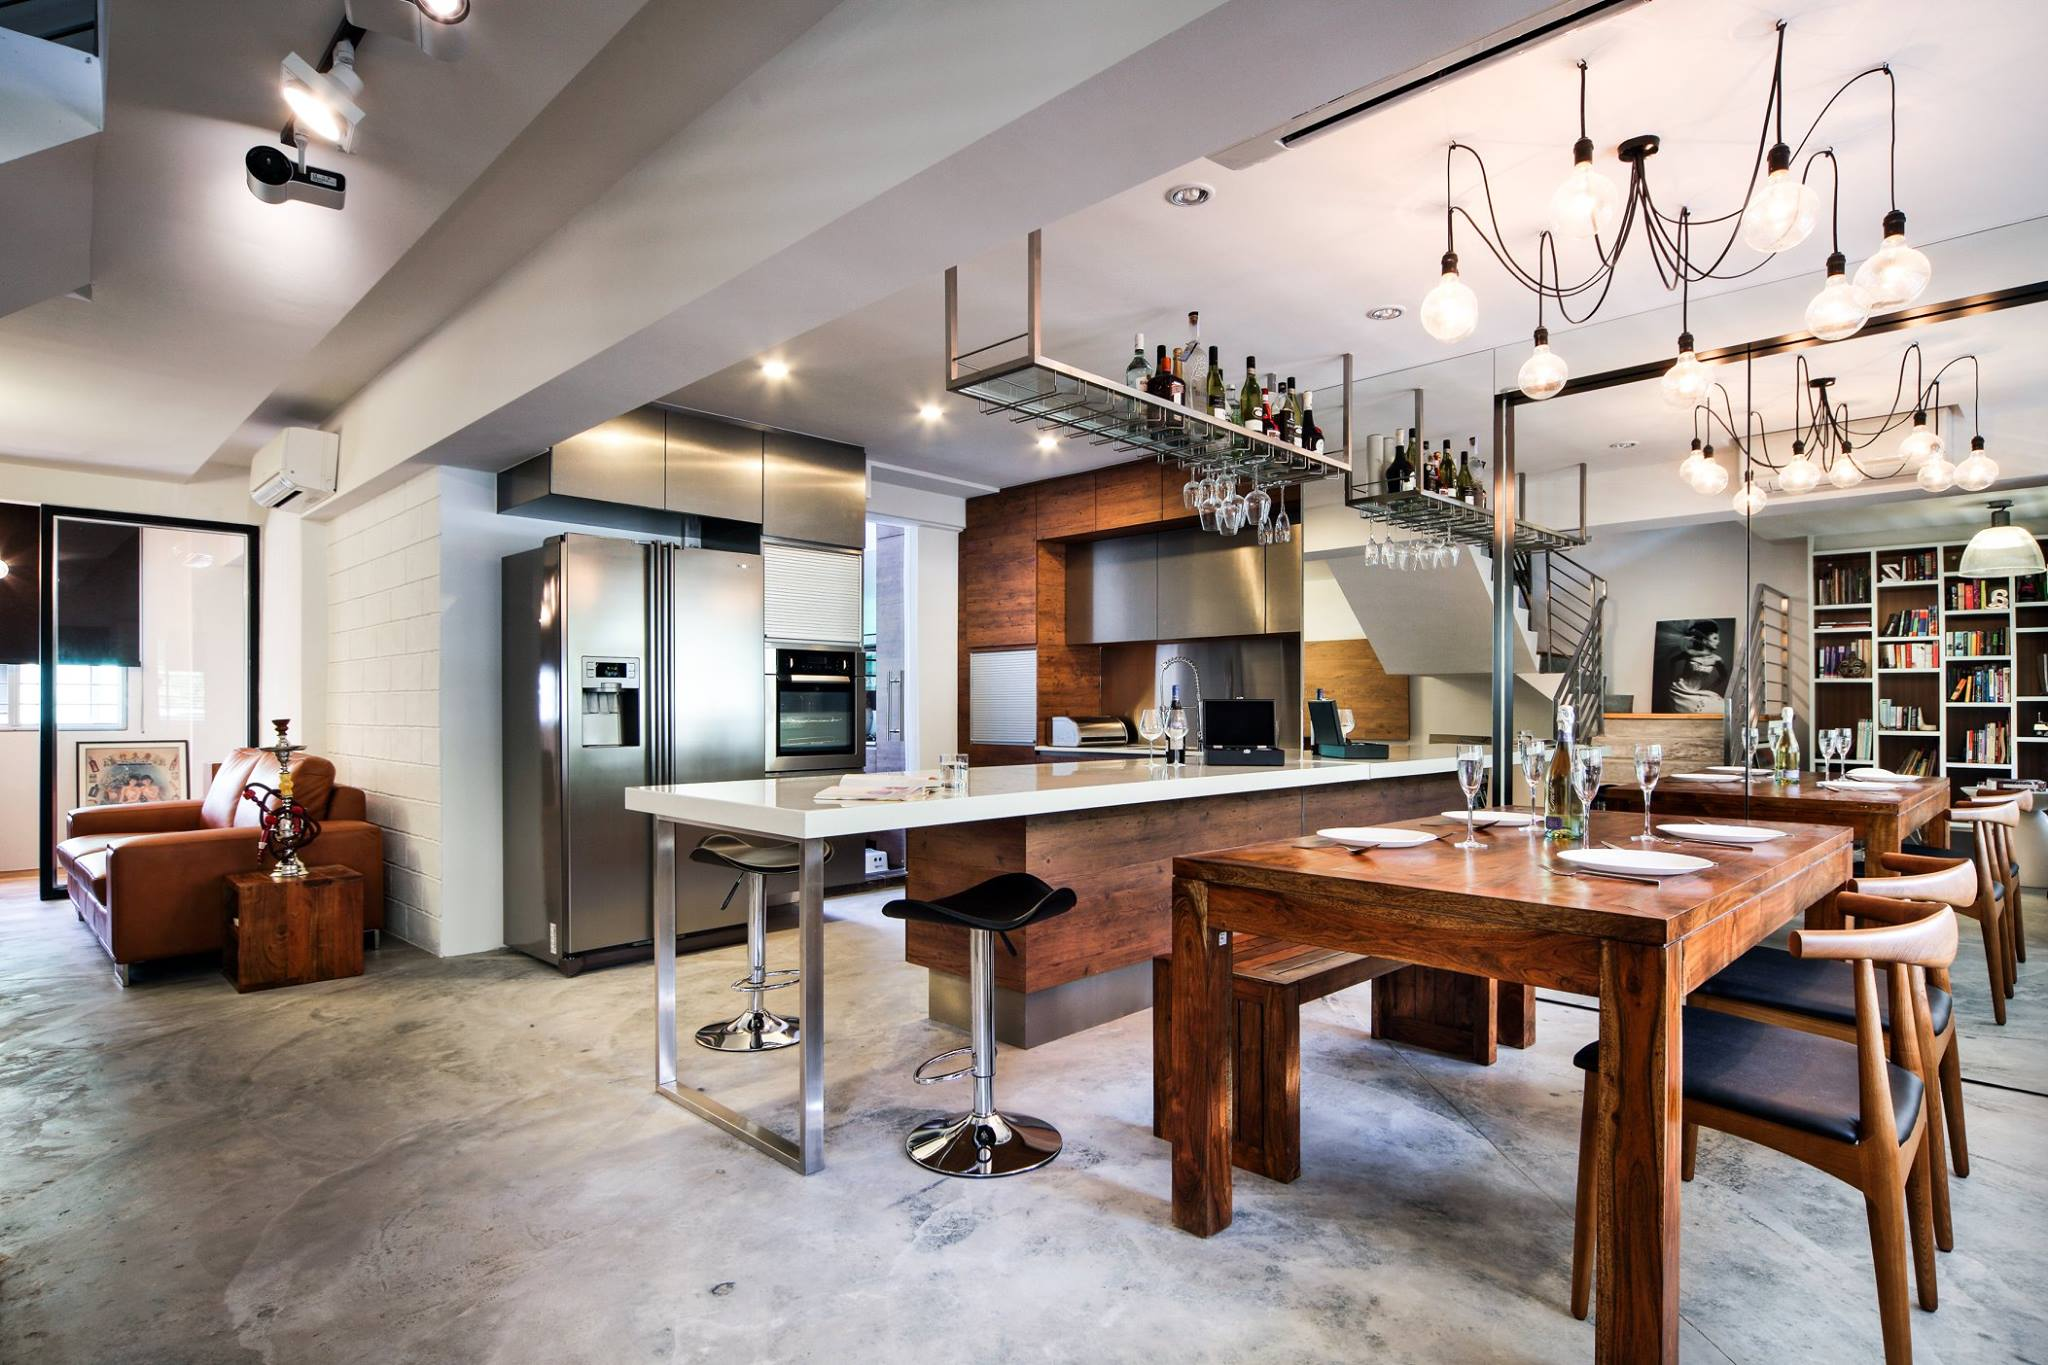 Modern interior design trends that uses wood 4 home for Interior design trends